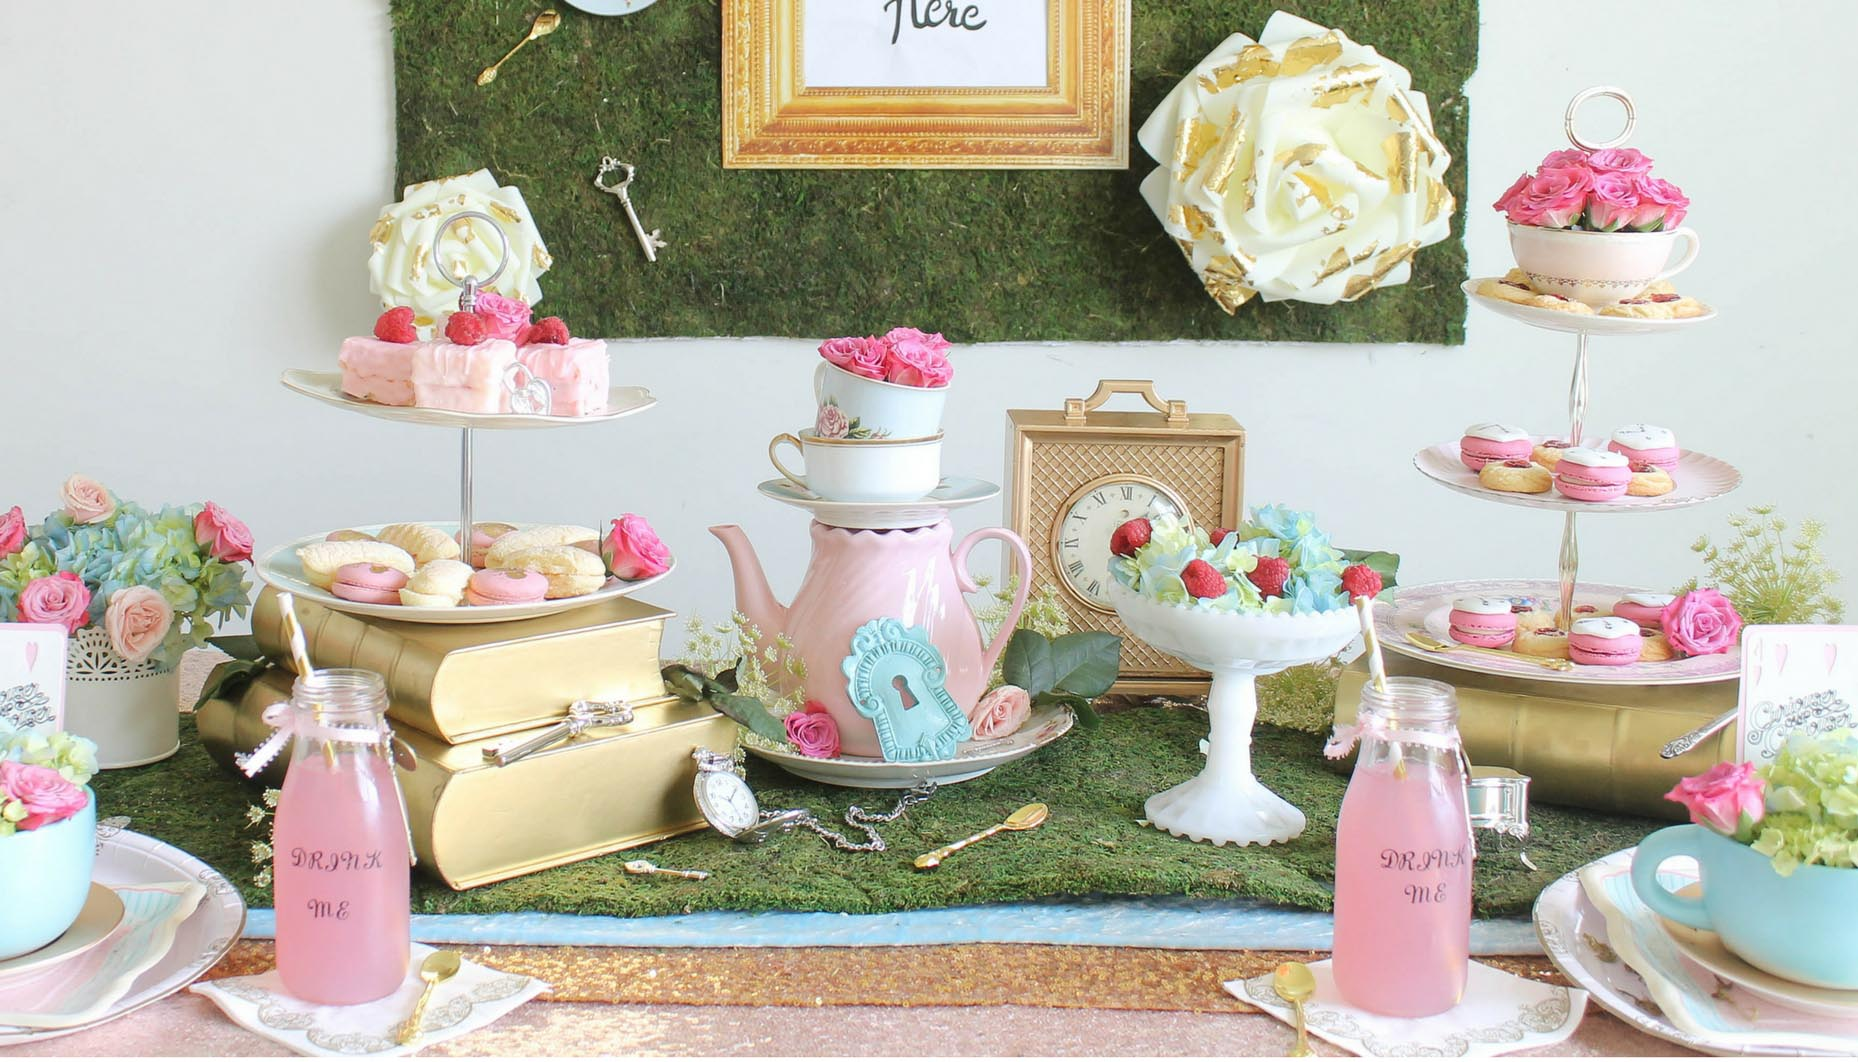 Alice in Wonderland wedding planning theme decoration